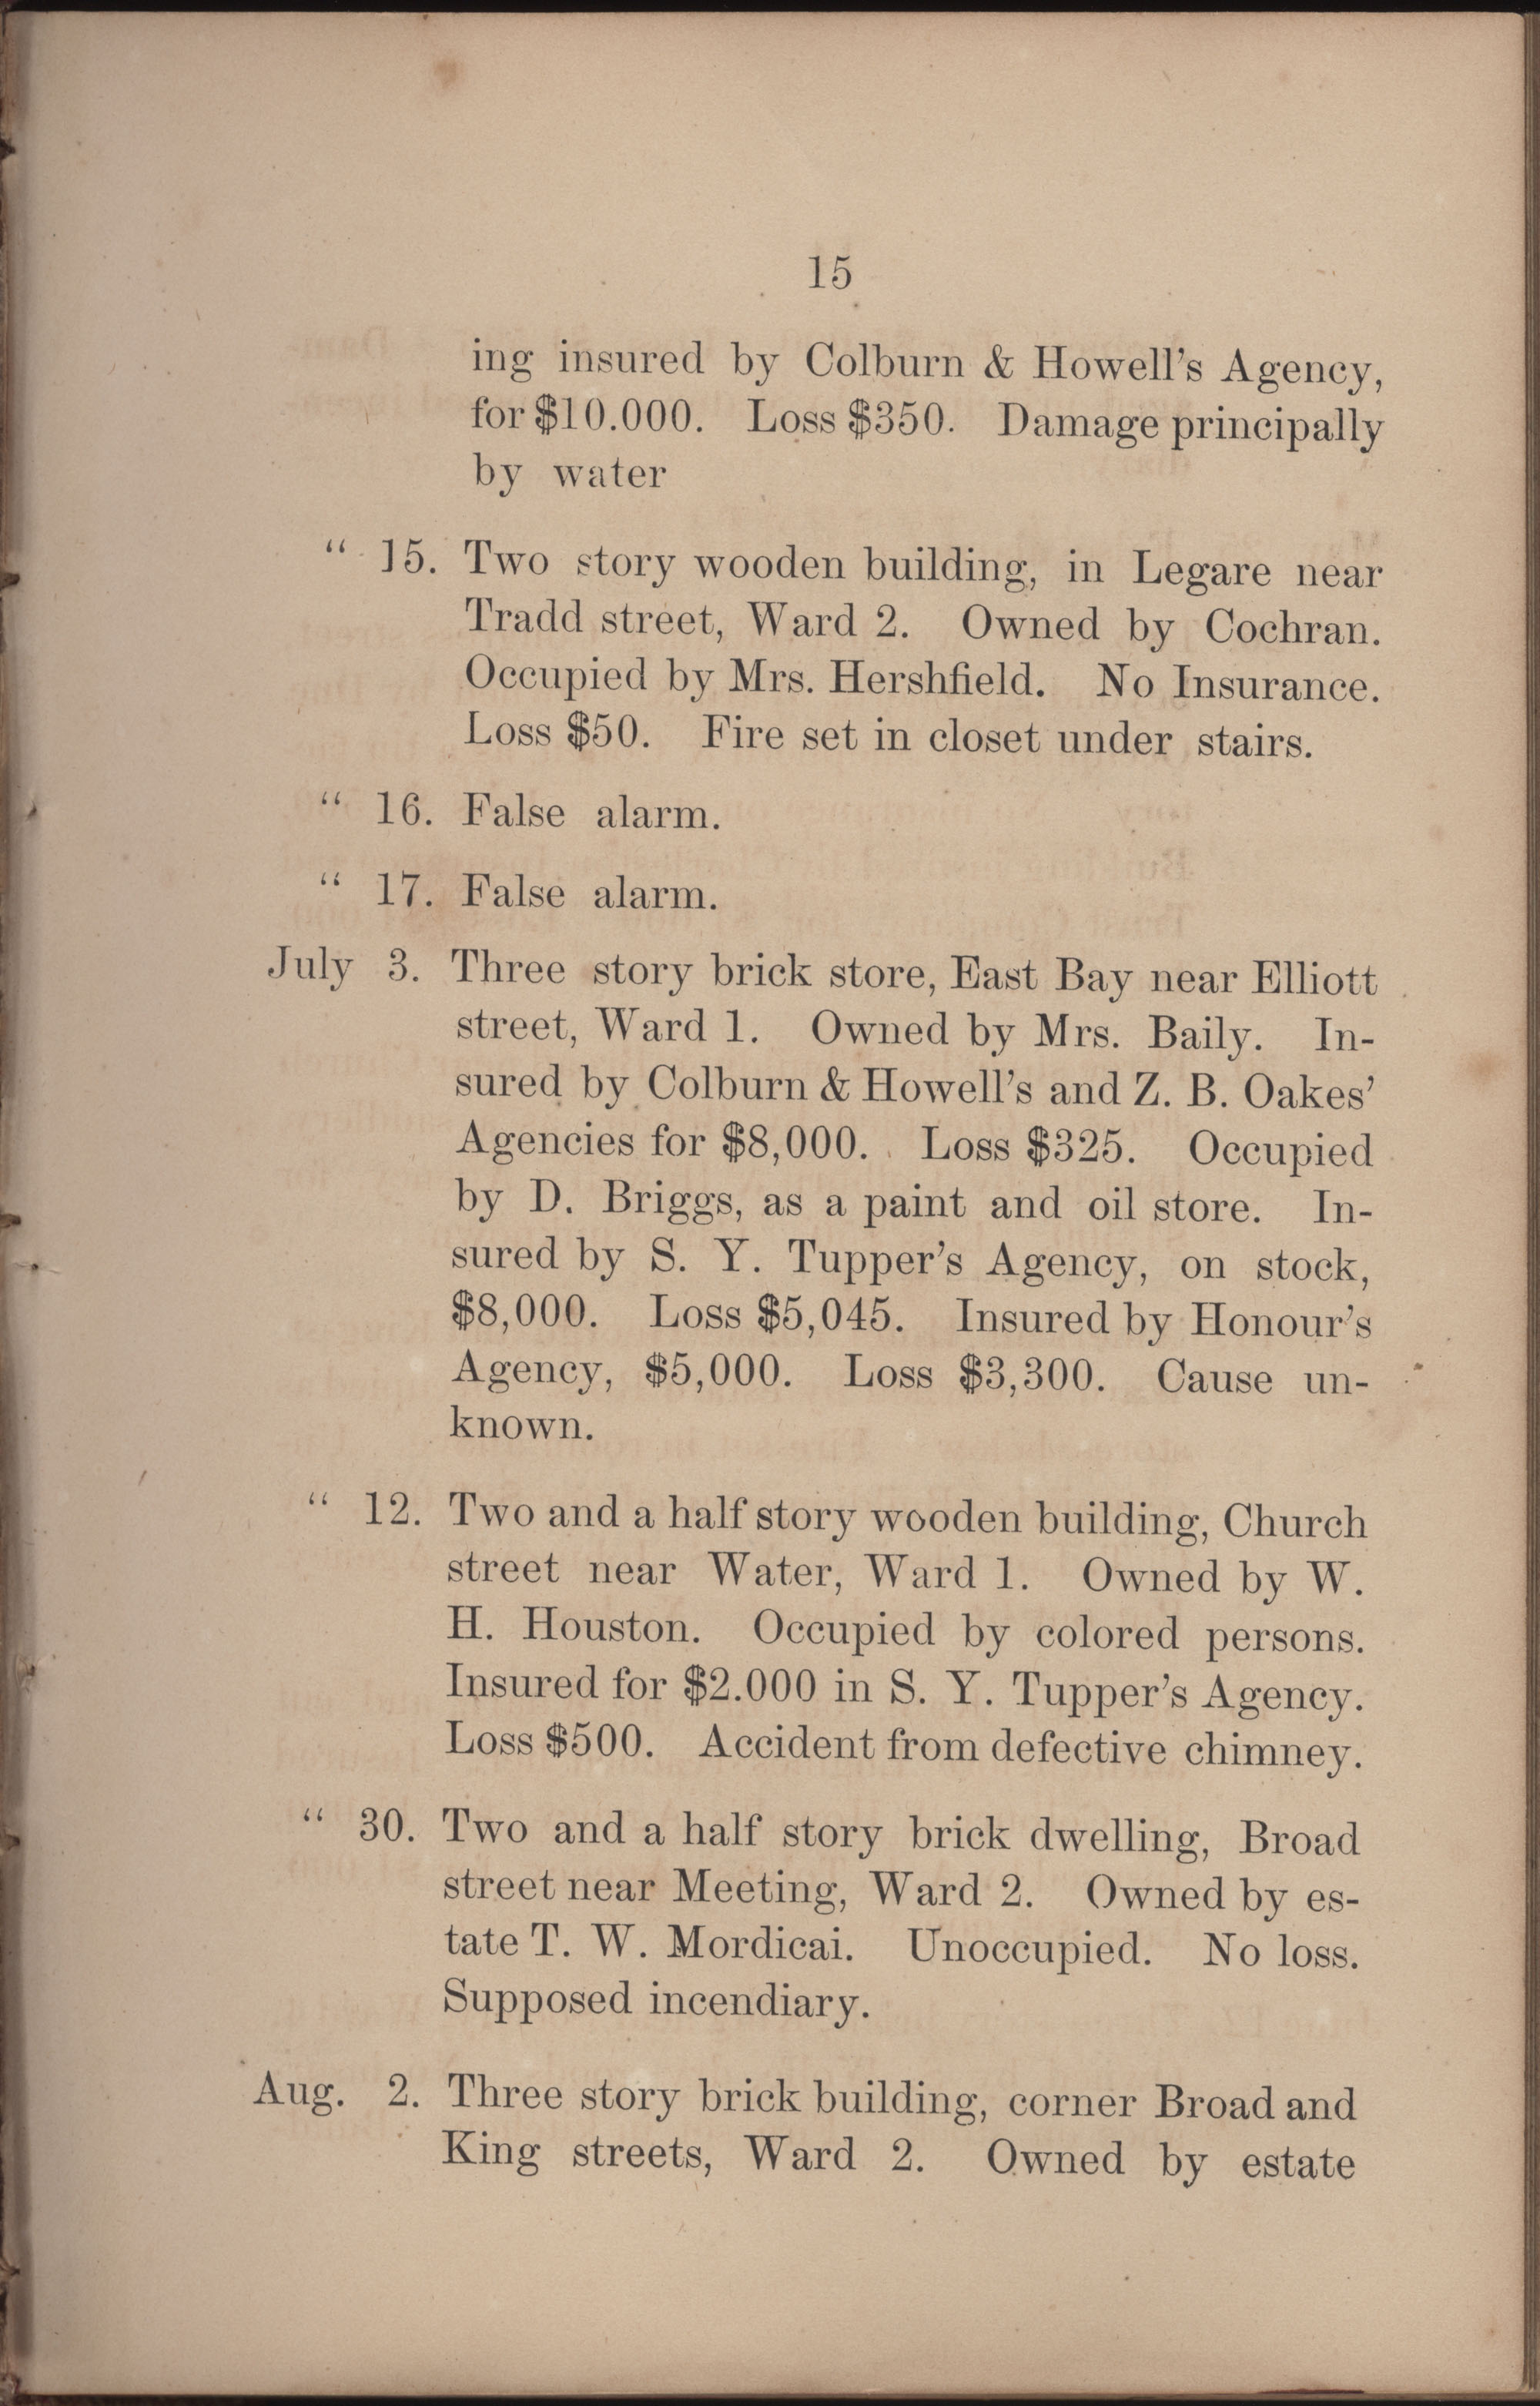 Annual Report of the Chief of the Fire Department of the City of Charleston, page 193